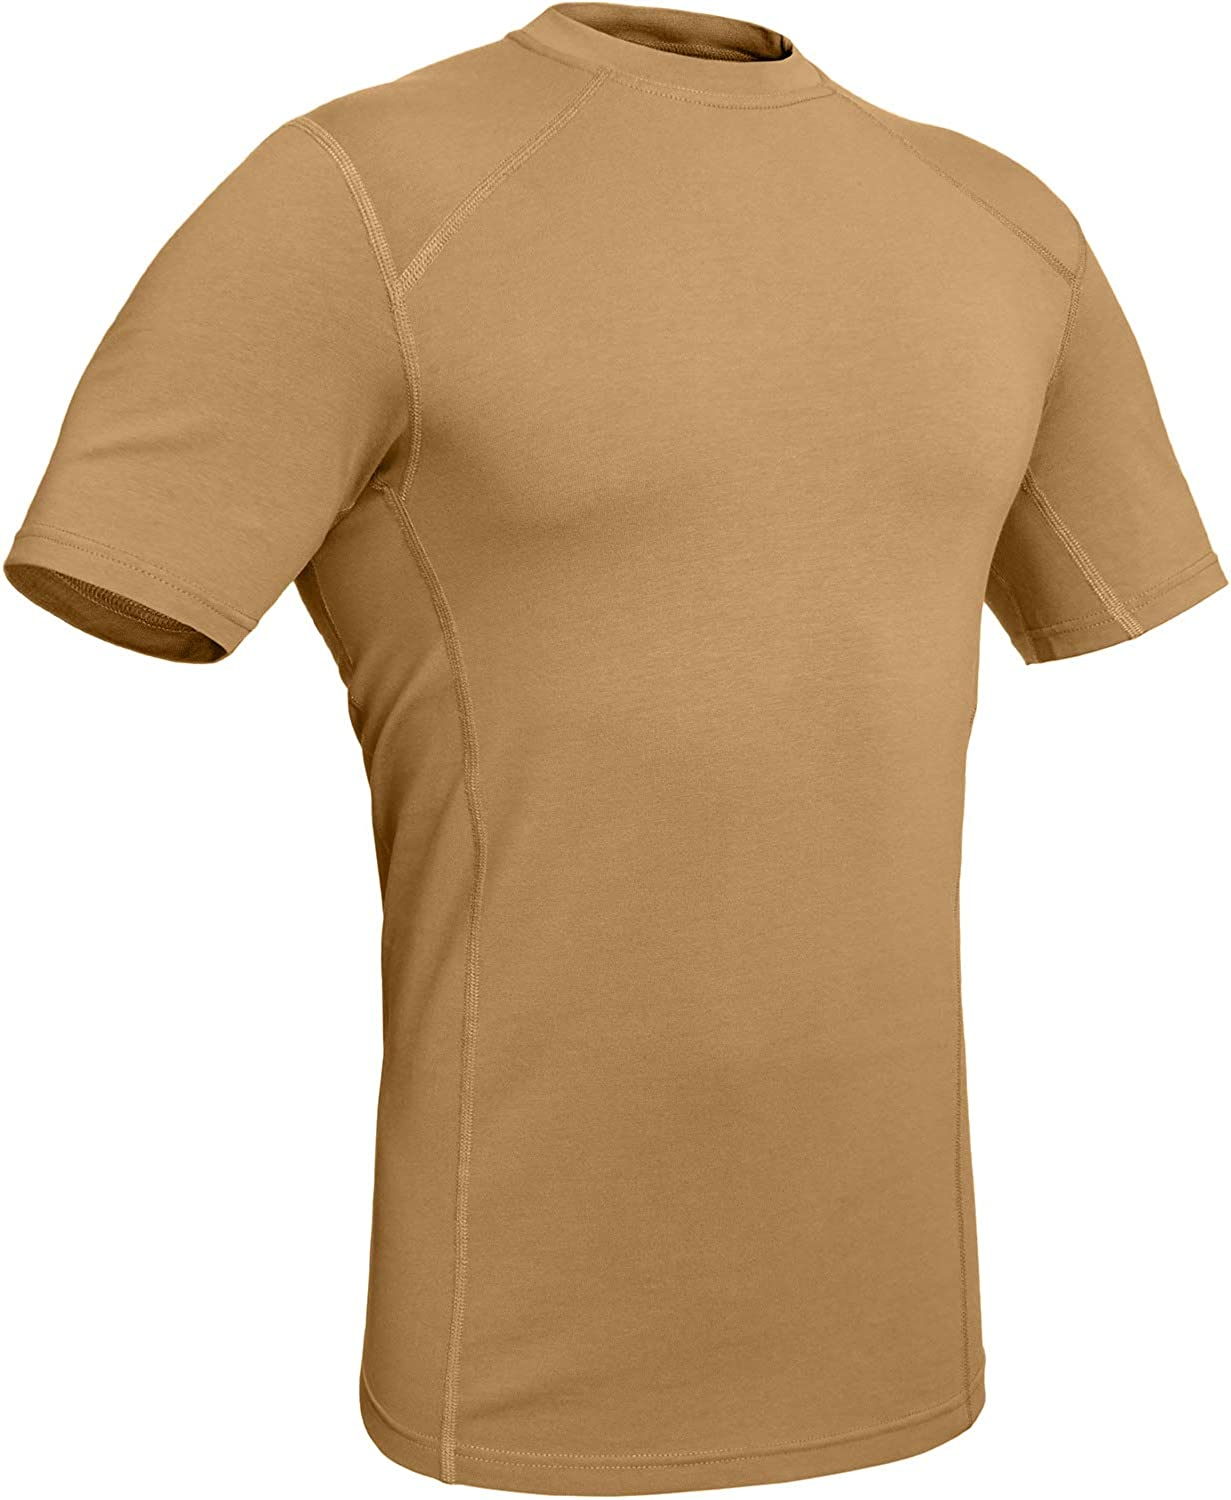 281Z Military Stretch Cotton Underwear T-Shirt - Tactical Hiking Outdoor - Punisher Combat Line